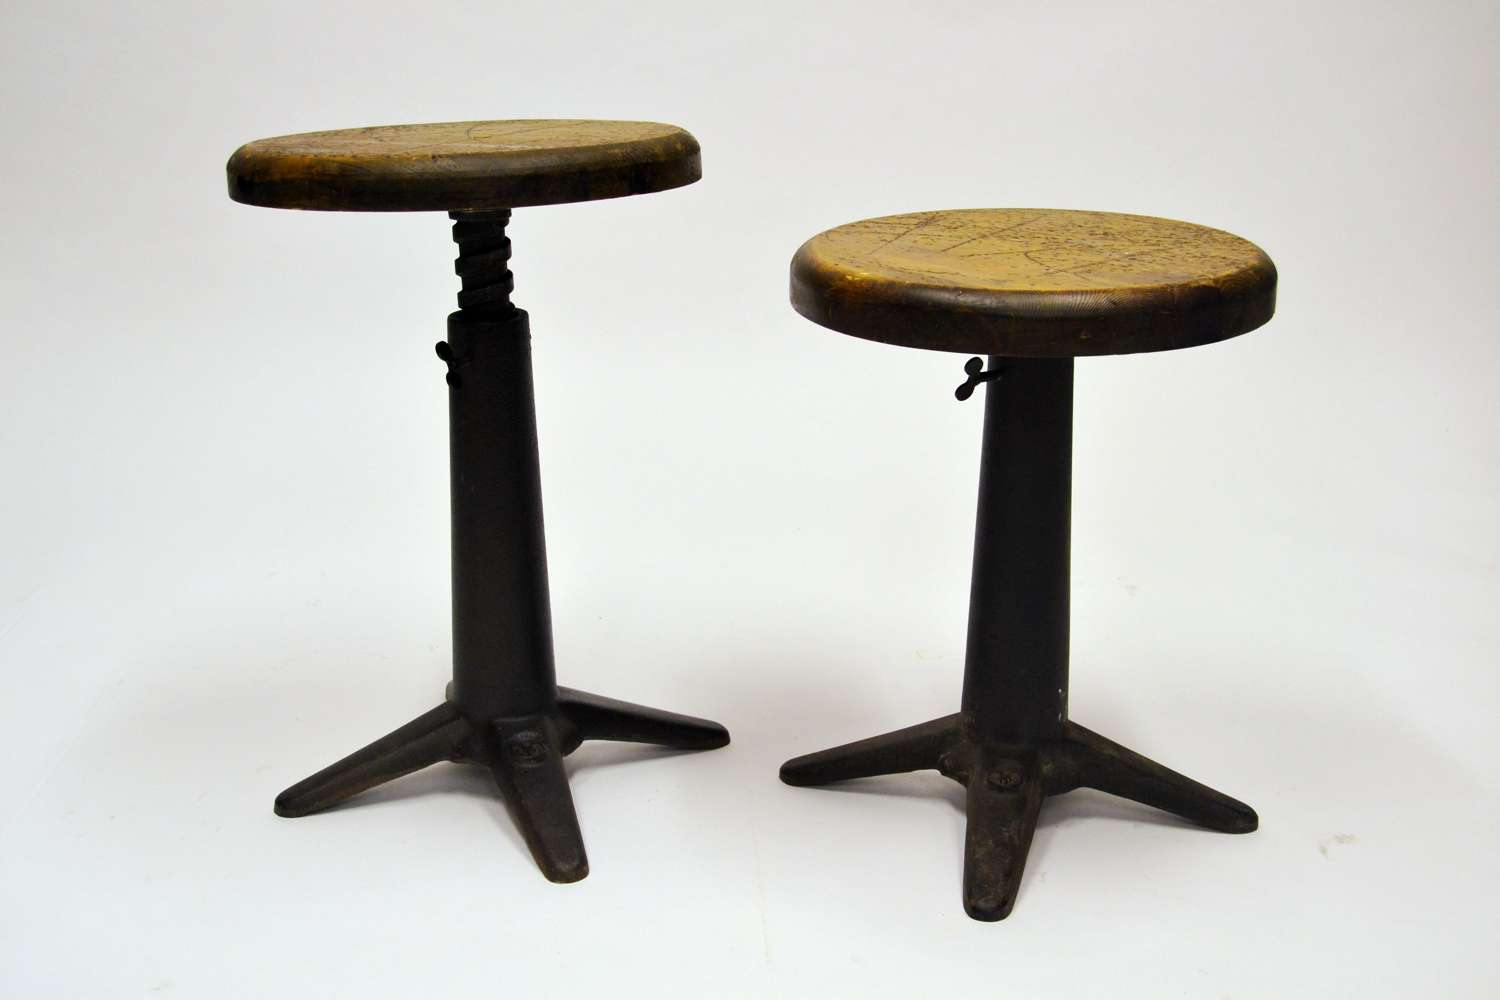 Round Industrial stools